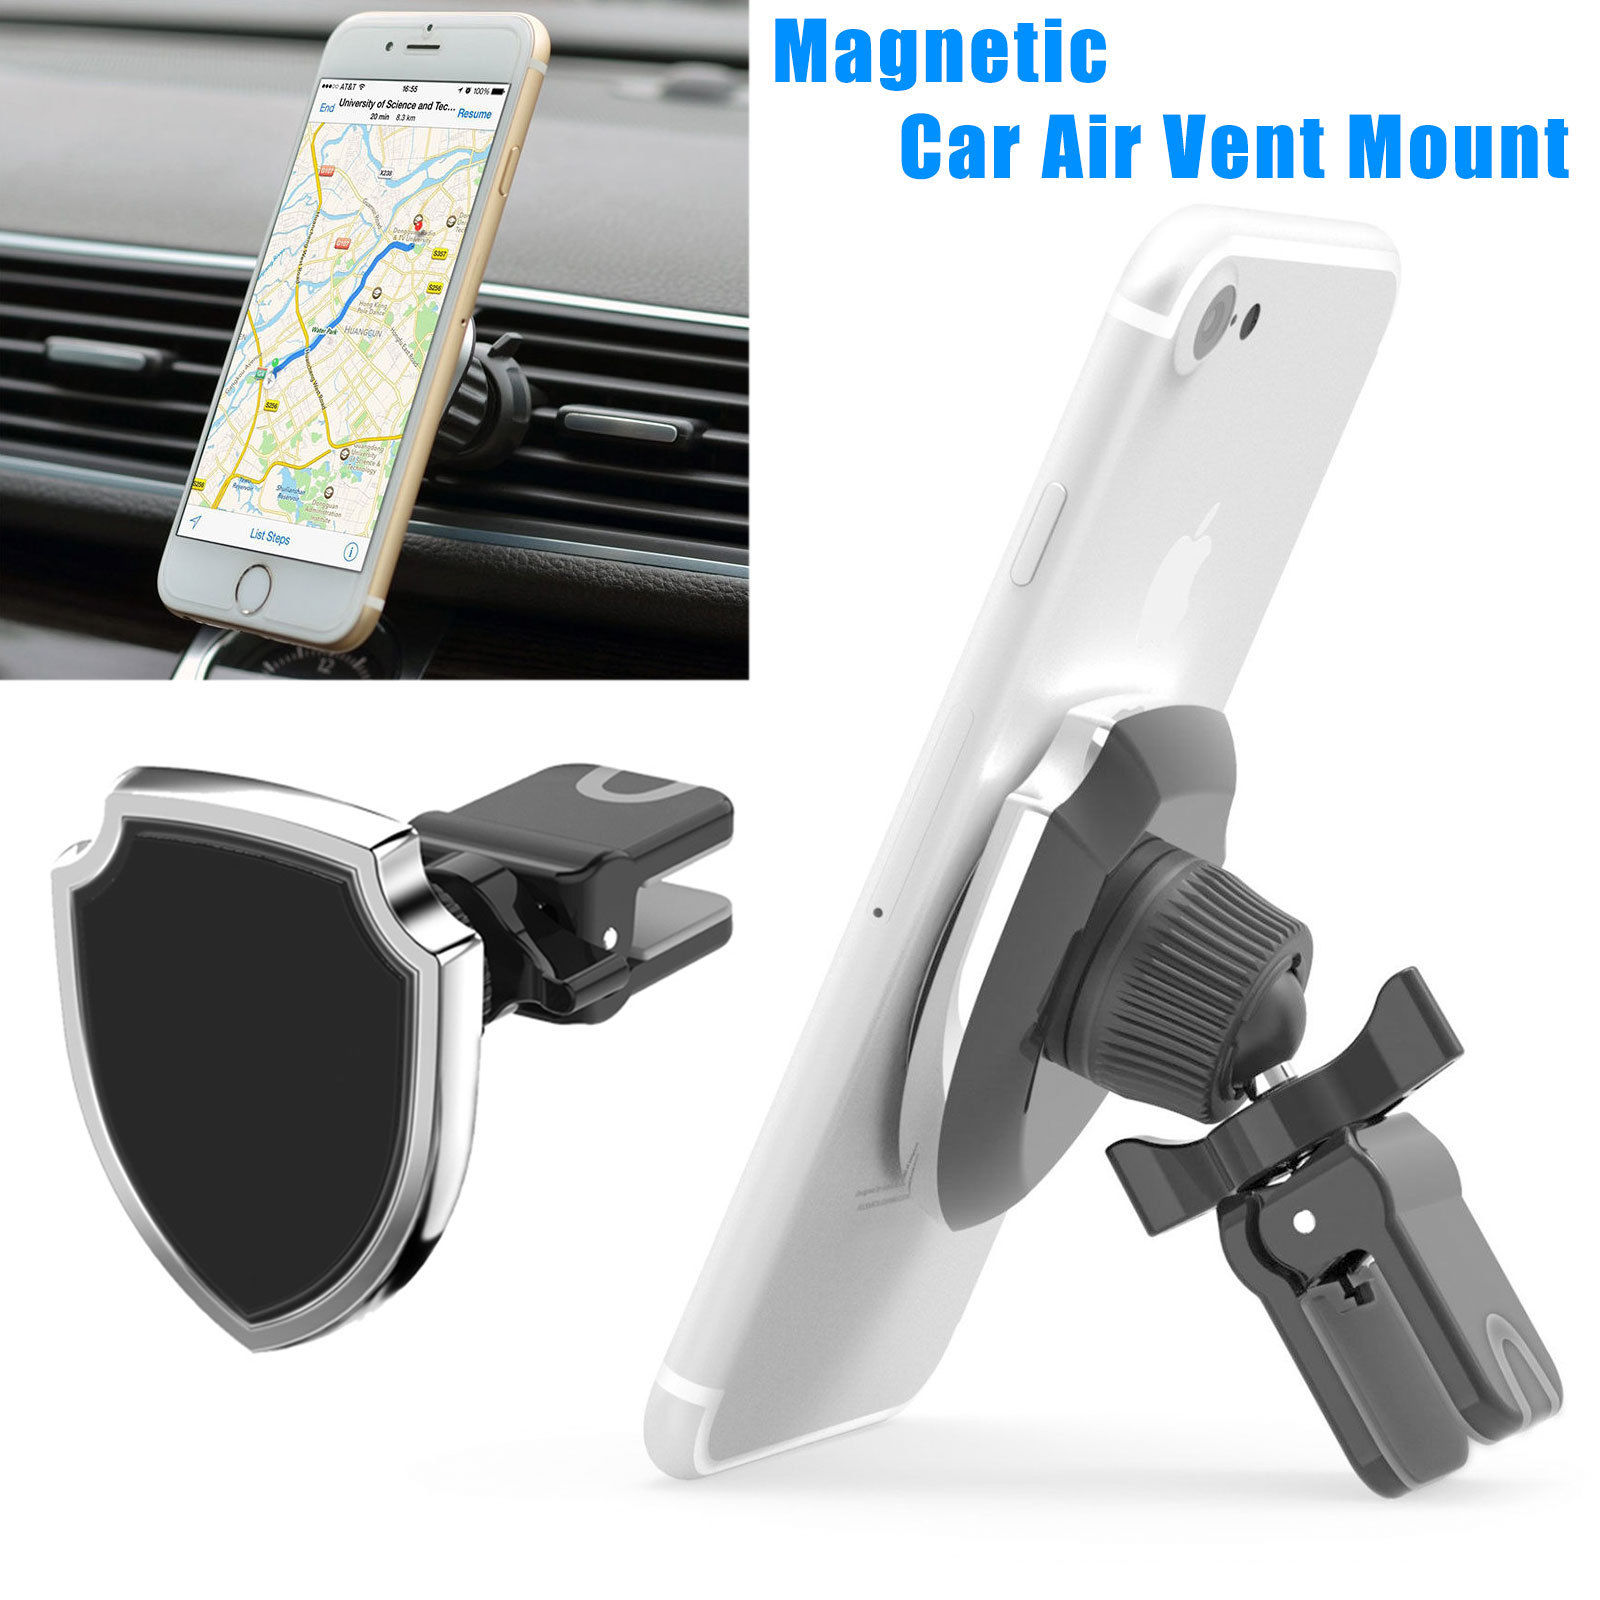 Car Mount, TSV Universal Air Vent Magnetic Car Mount Holder for Smartphones iPhone X 8 7, Samsung Galaxy S9 S8,Google Pixel,LG and GPS, 360°Rotation, Silver